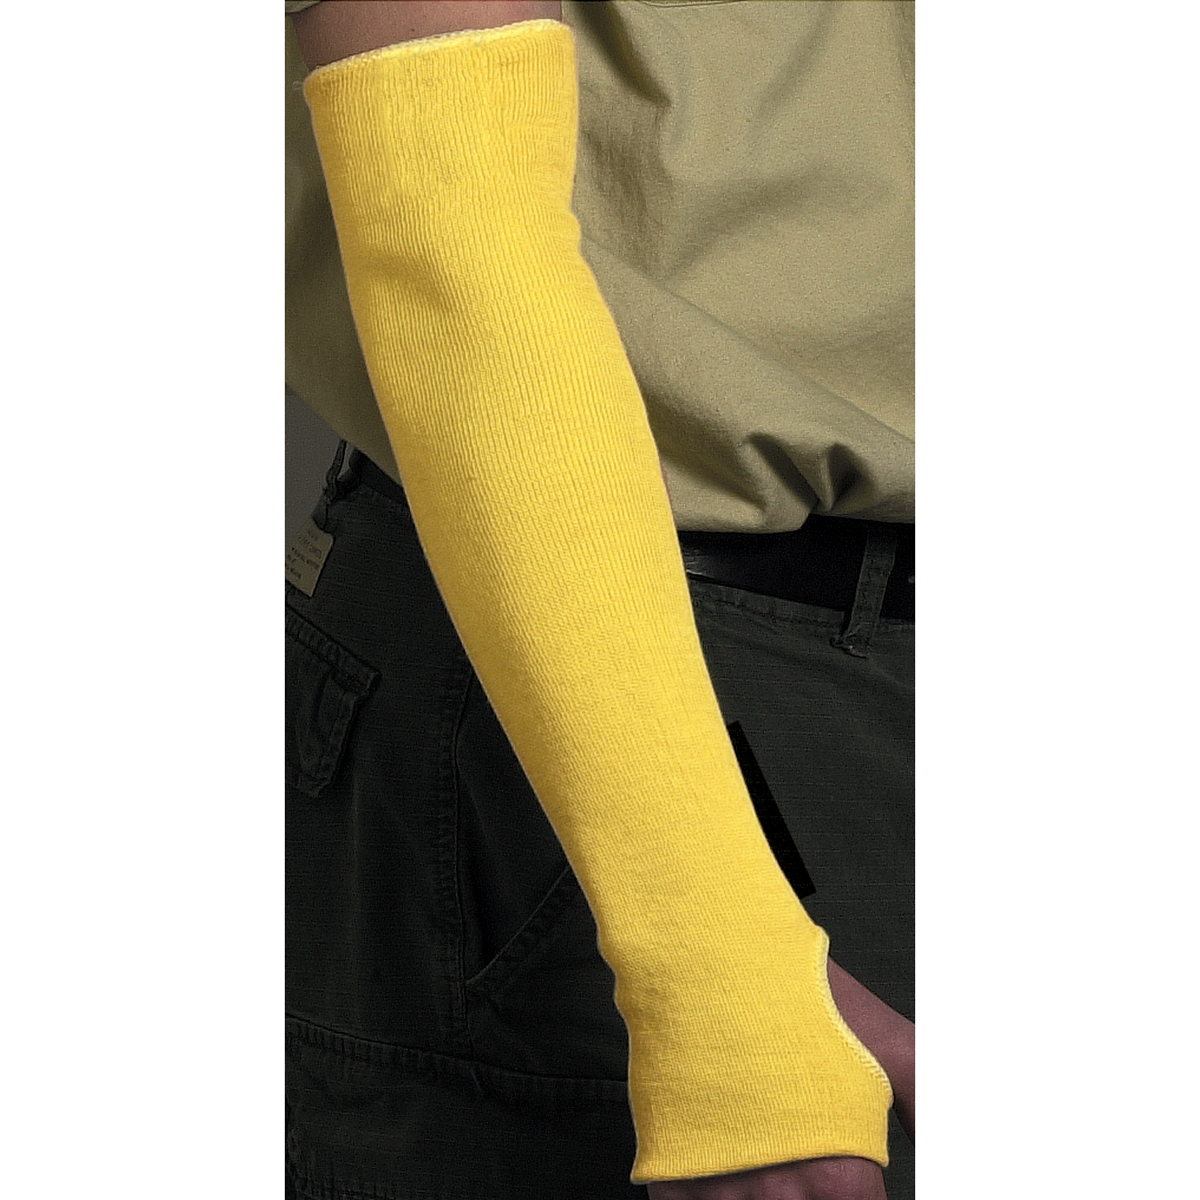 mcr memphis 9378t kevlar knit sleeve how to clean